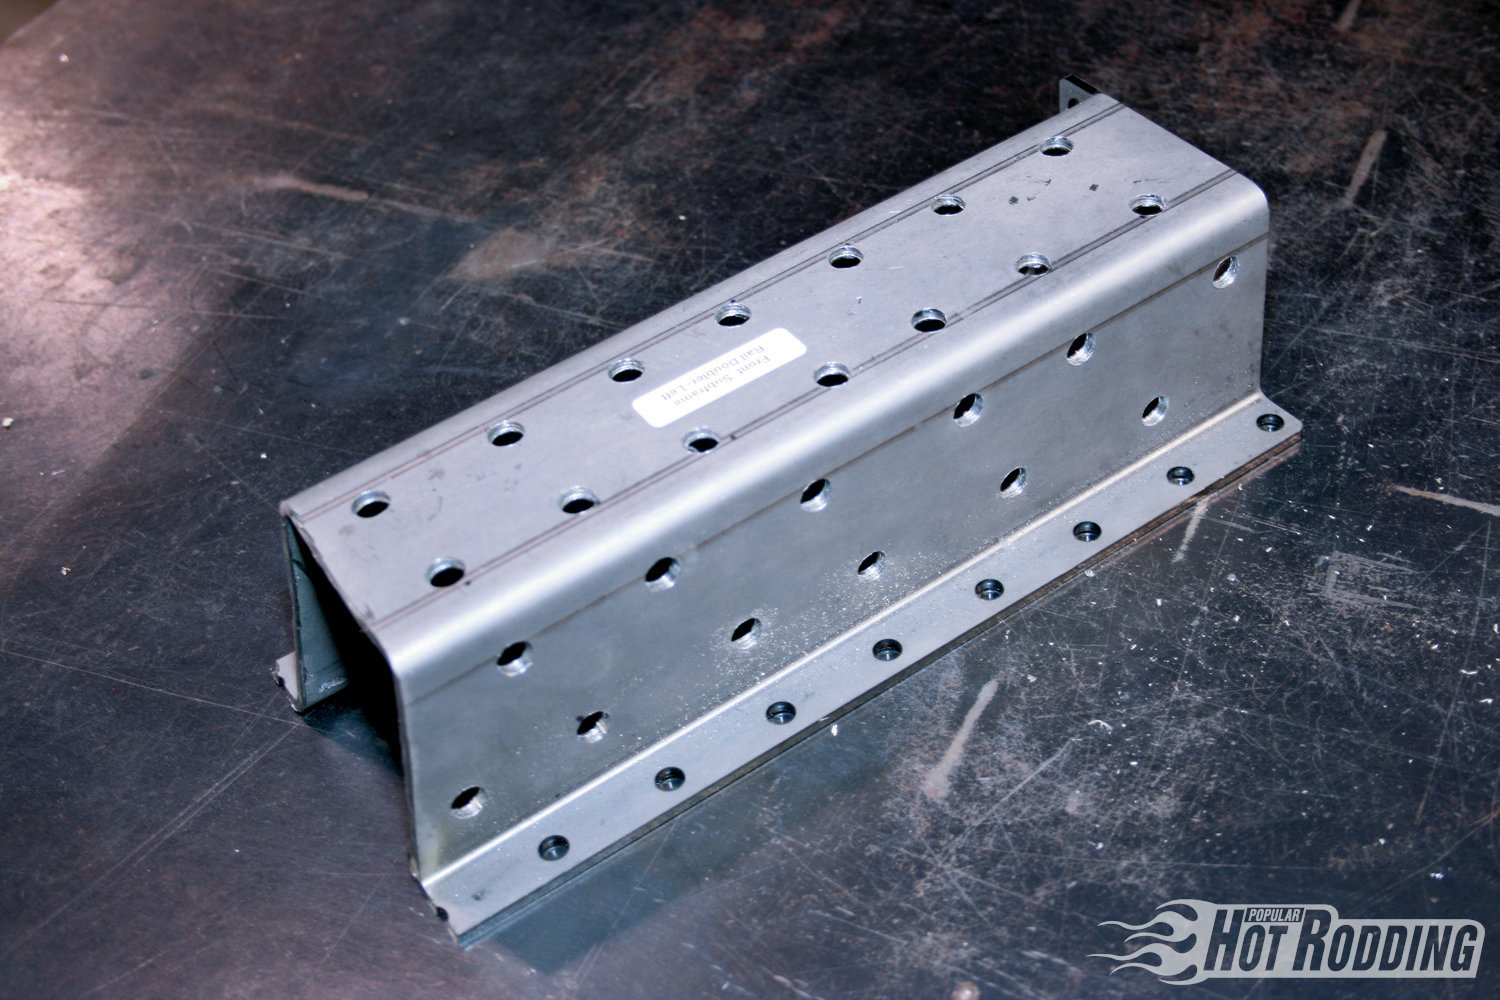 8. To prep the reinforcement plates for plug-welding, drill ⅜-inch holes spaced 1-inch apart along the bottom and sides of the plate. This will net 12-14 plug weld holes on each flat section of the plate. Deburr any sharp edges, then spray the plate down with weld-thru primer to prevent rust.